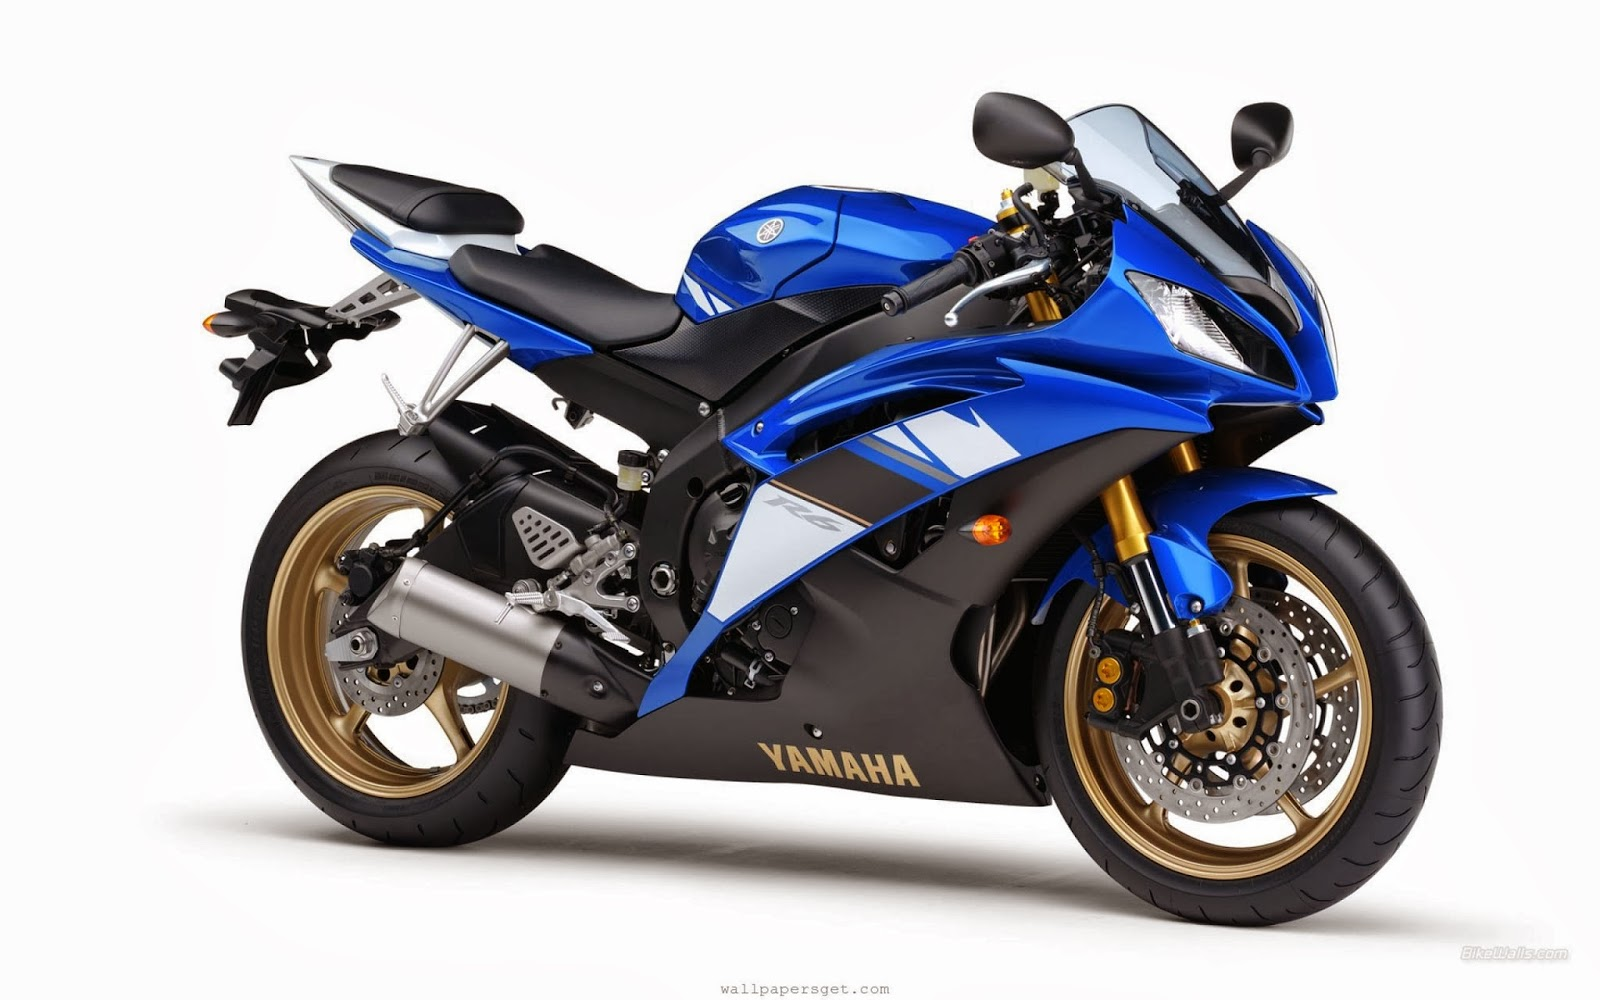 lovable images: amazing bikes hd wallpapers free download || motor